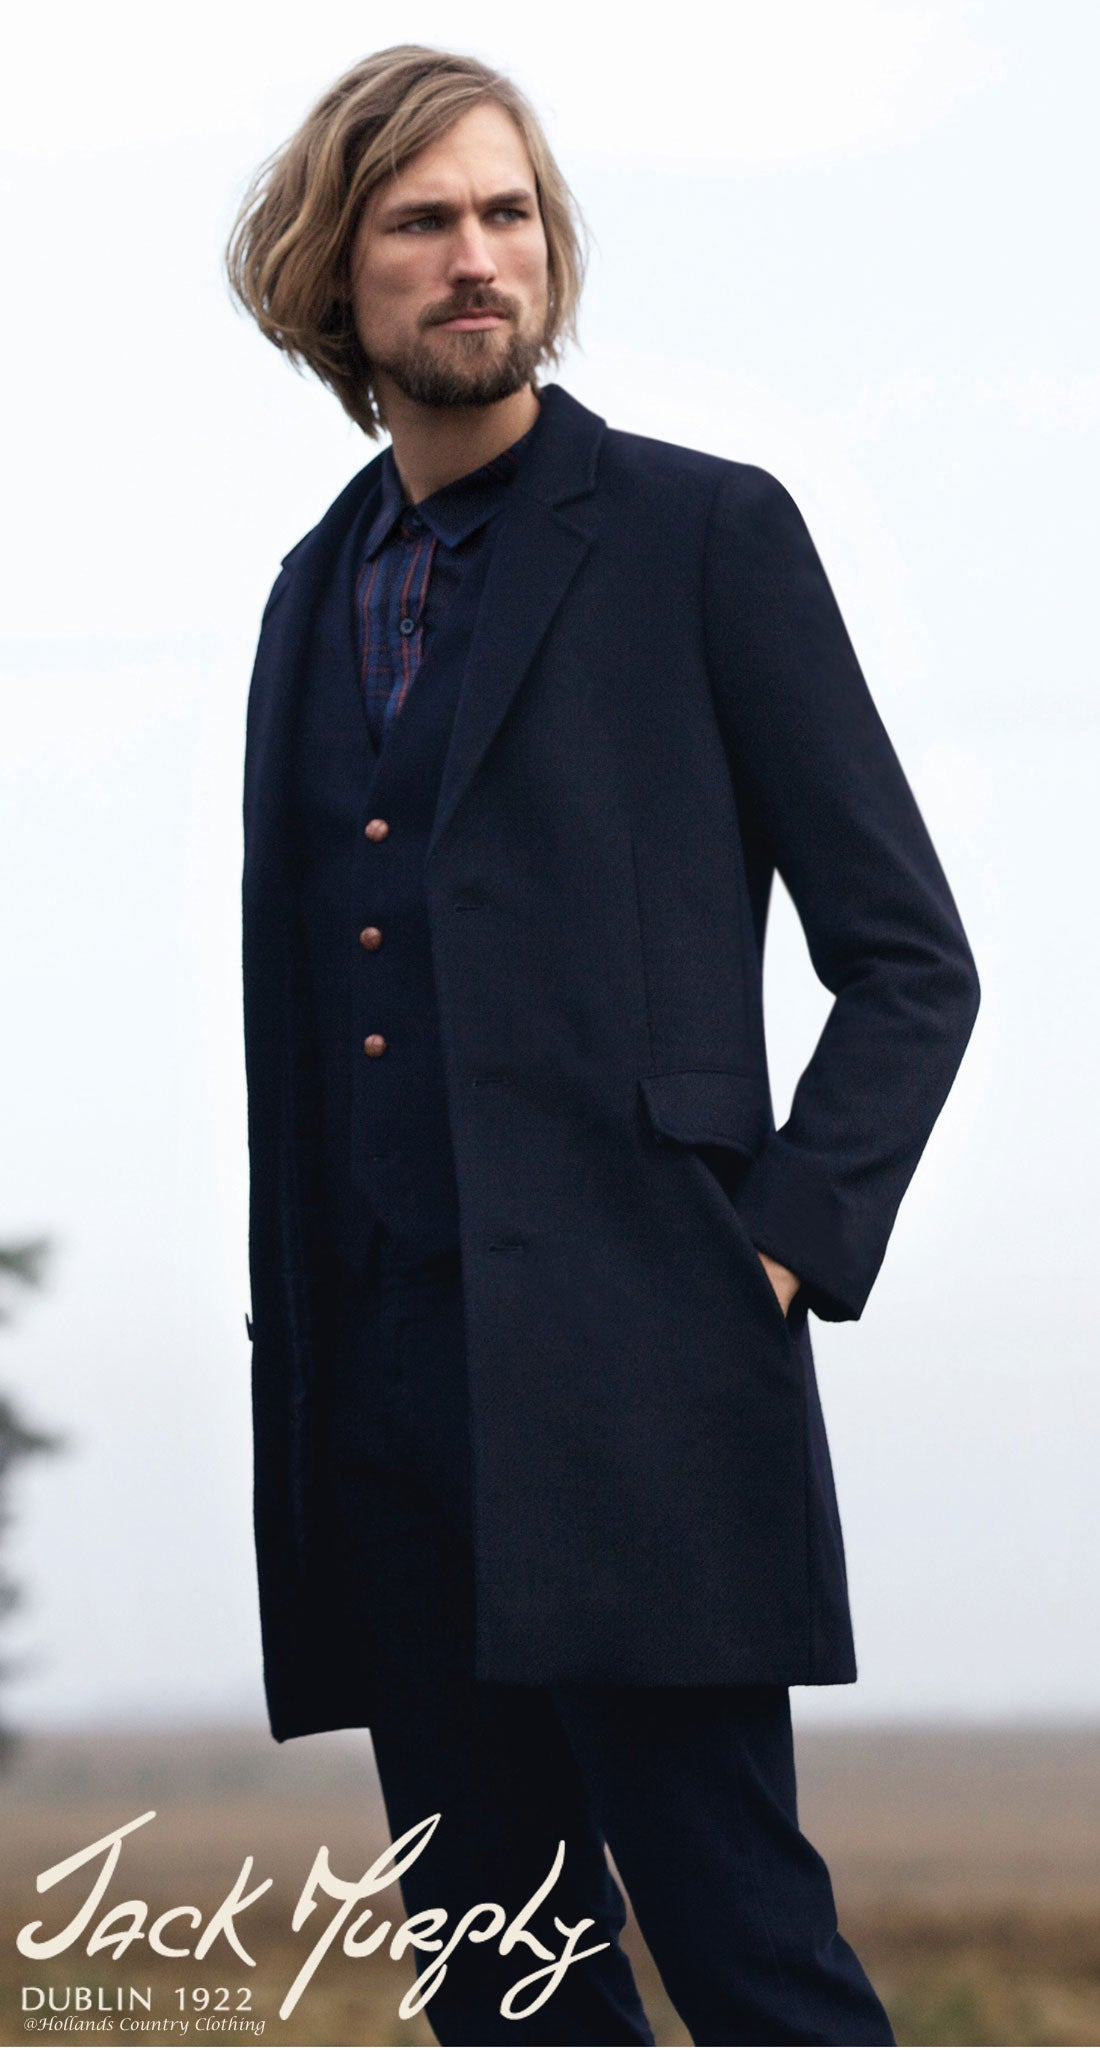 A slim-armed, near knee-length overcoat by jack murphy